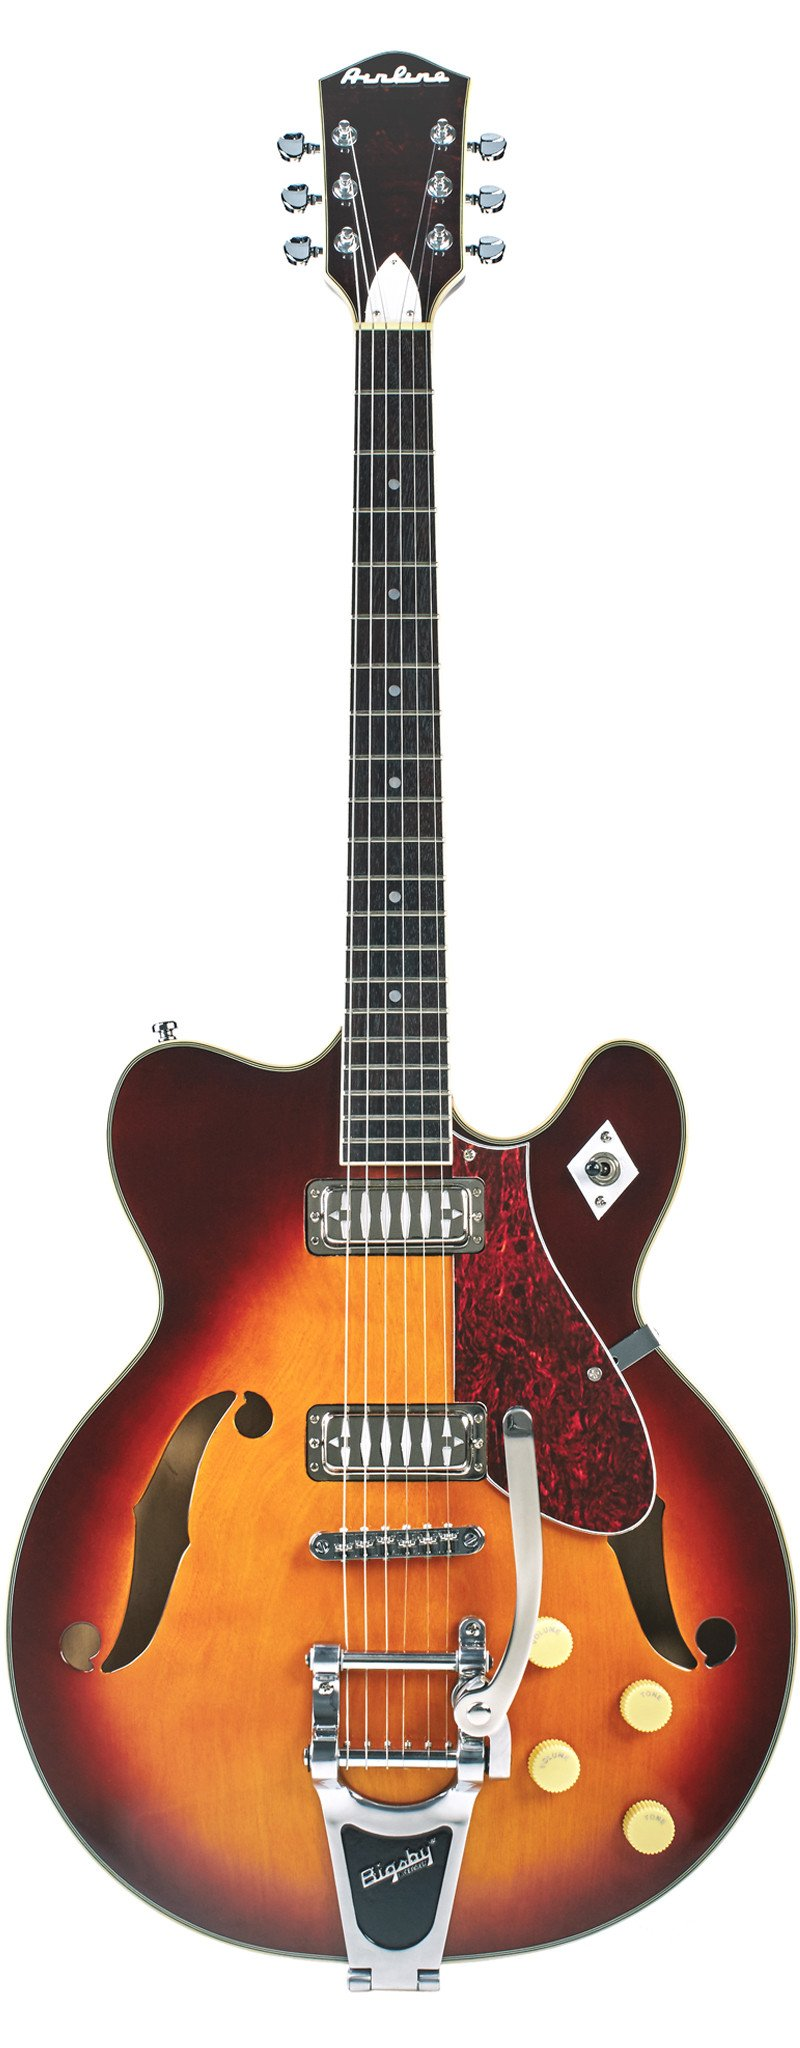 Eastwood Guitars Airline H74 DLX Honeyburst Full Front